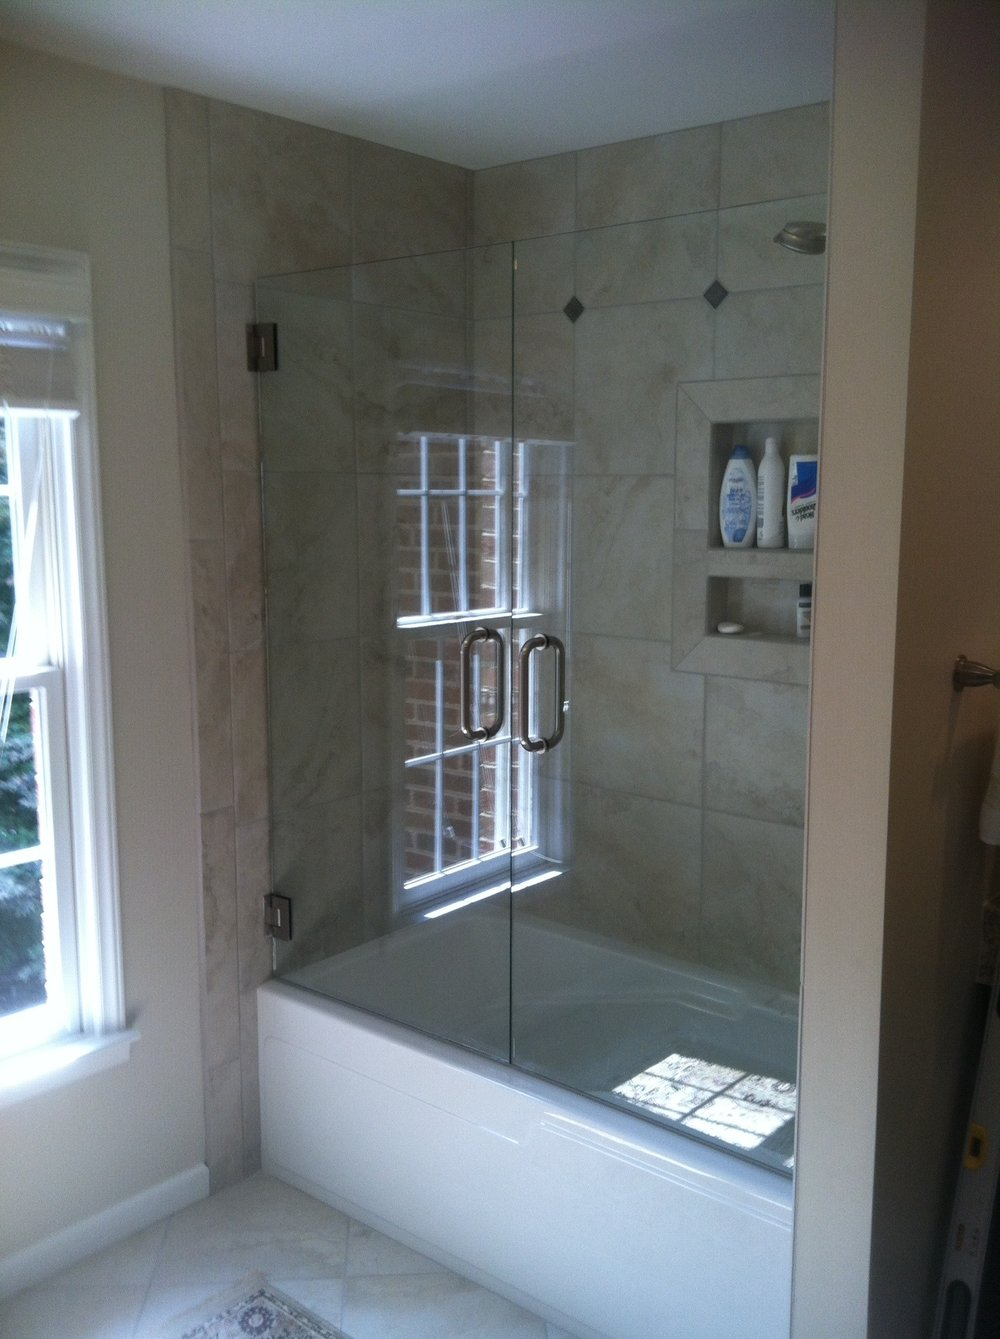 Chase_shower_door_photos-06.jpg